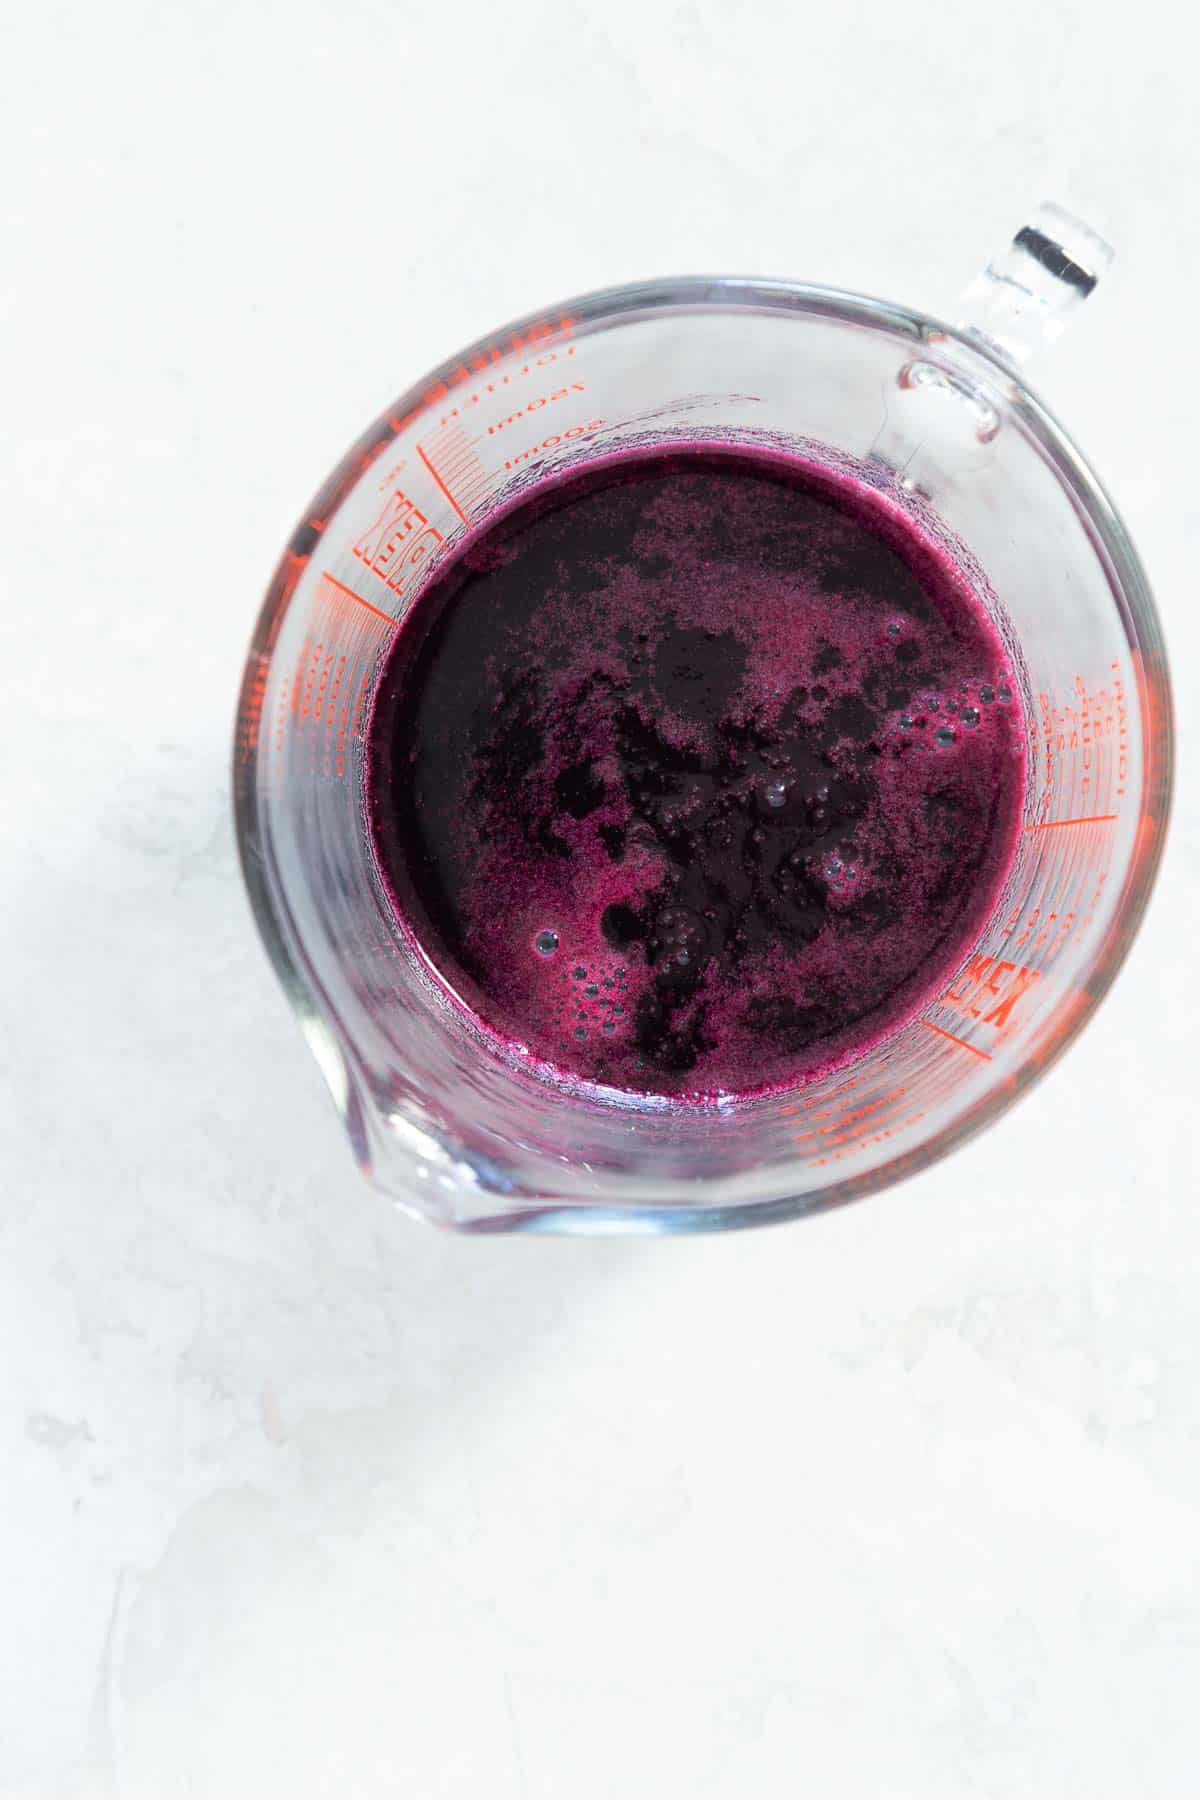 Overhead view of a measuring cup with purple blueberry syrup